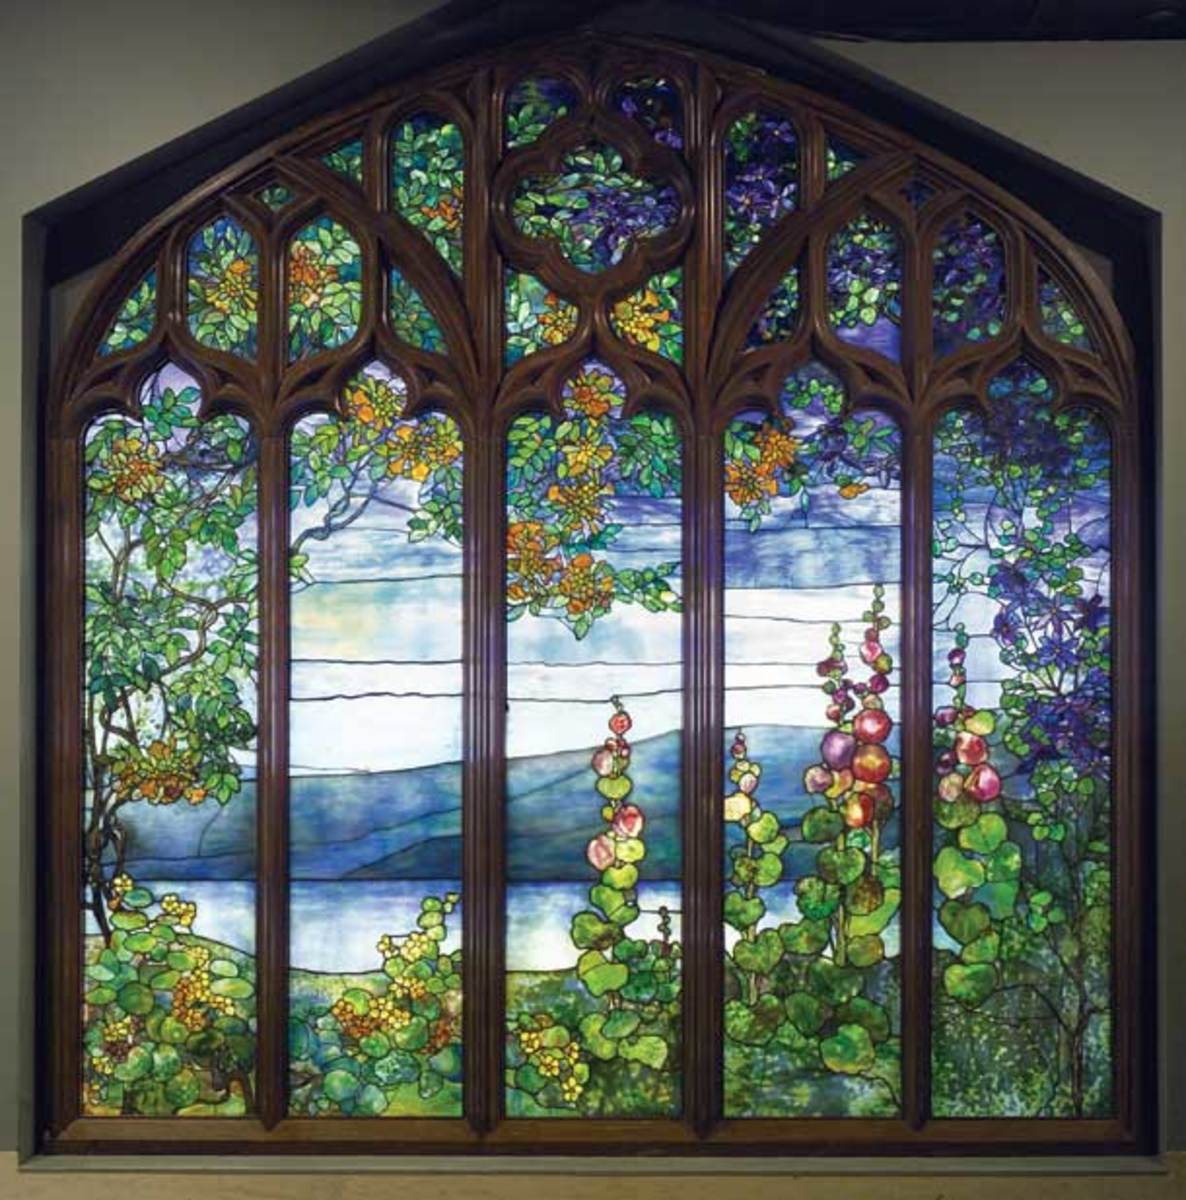 Window with Hudson River Landscape from Rochroane, 1905, by Louis Comfort Tiffany Commissioned by Melchior Beltzhoover for his Gothic-revival mansion in Irvington. Courtesy of the Corning Museum of Glass